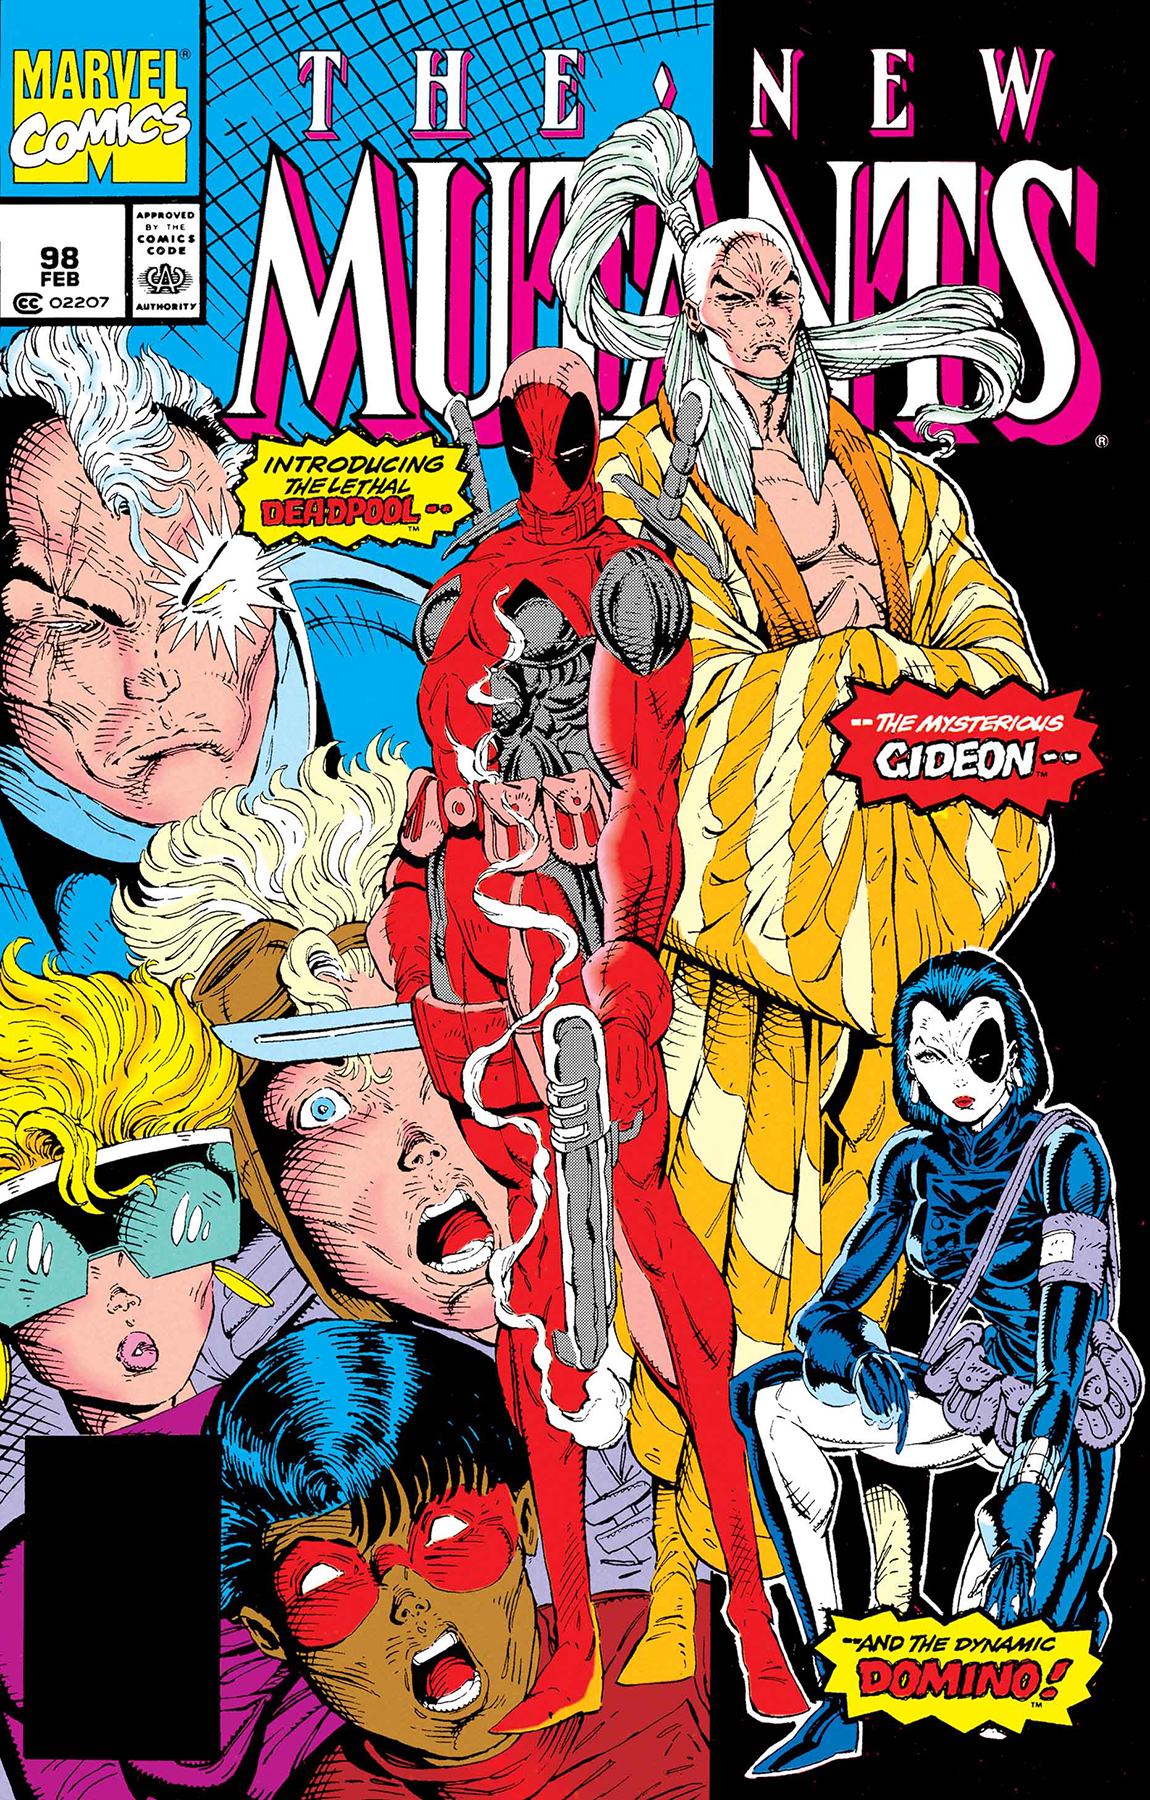 Now Rob Liefeld Will Not Sign New Mutants #98 Facsimile Editions